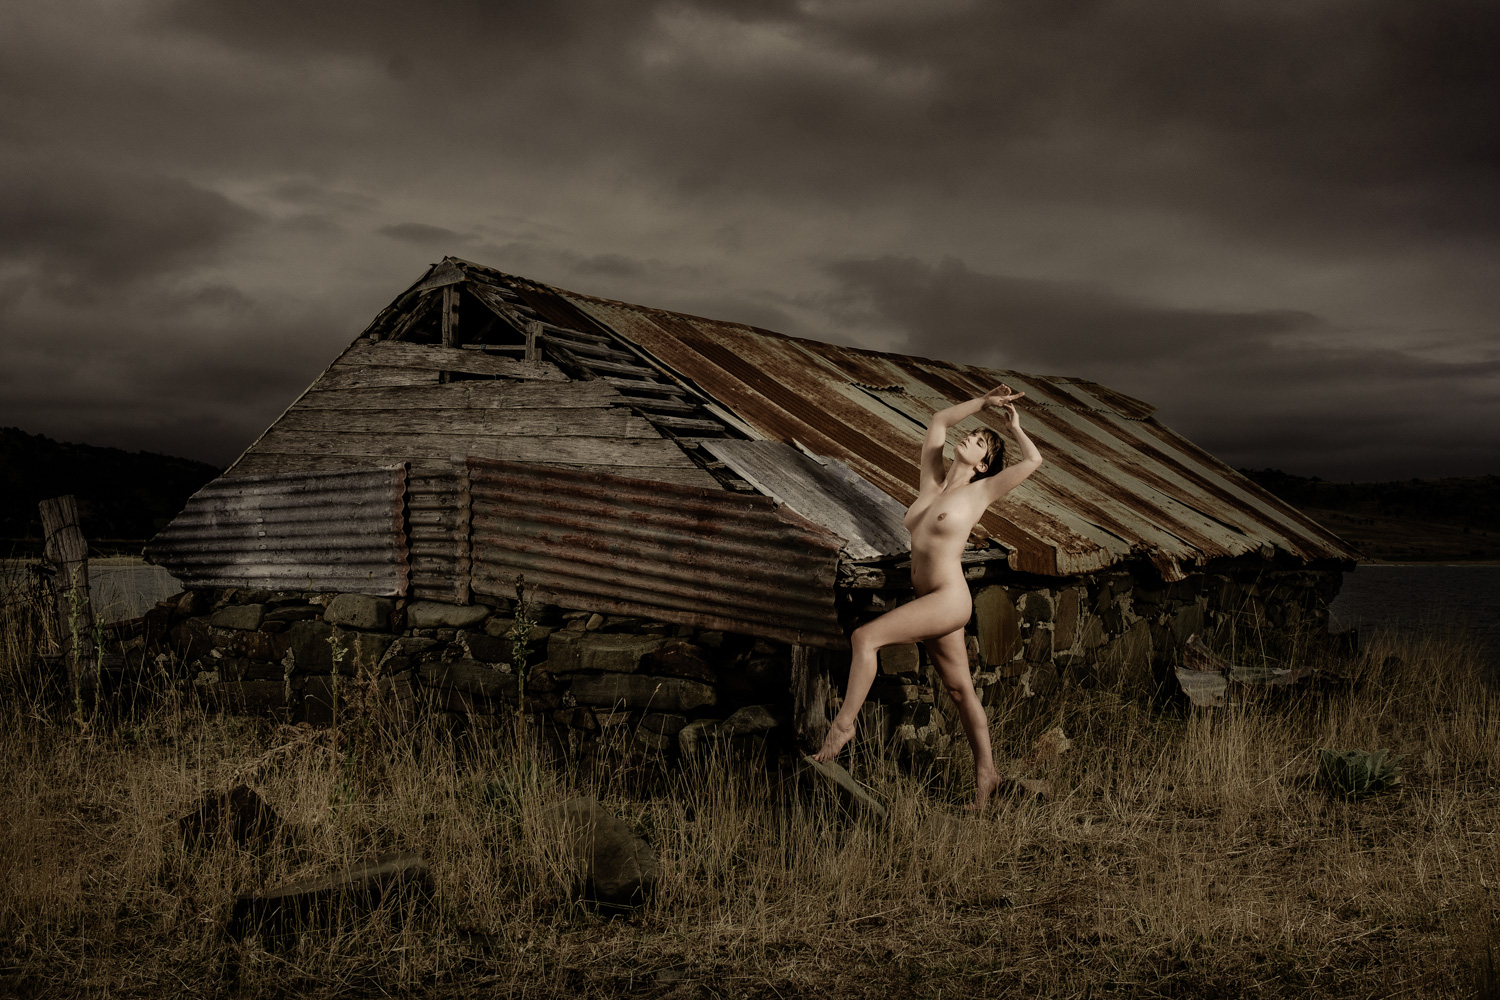 Another one from my Tassie workshop. This is the amazing @skdmodel from the UK who happens to be heading to Brisbane very soon. I scouted this location way back in 2007 on my very first trip to Tasmania and it just happened to be 5 minutes up the road from our accommodation for the workshop. Lighting with two @elinchrom_ltd ELB 400's to create some drama. Assisted by @phototim1999 and @theimagesguy